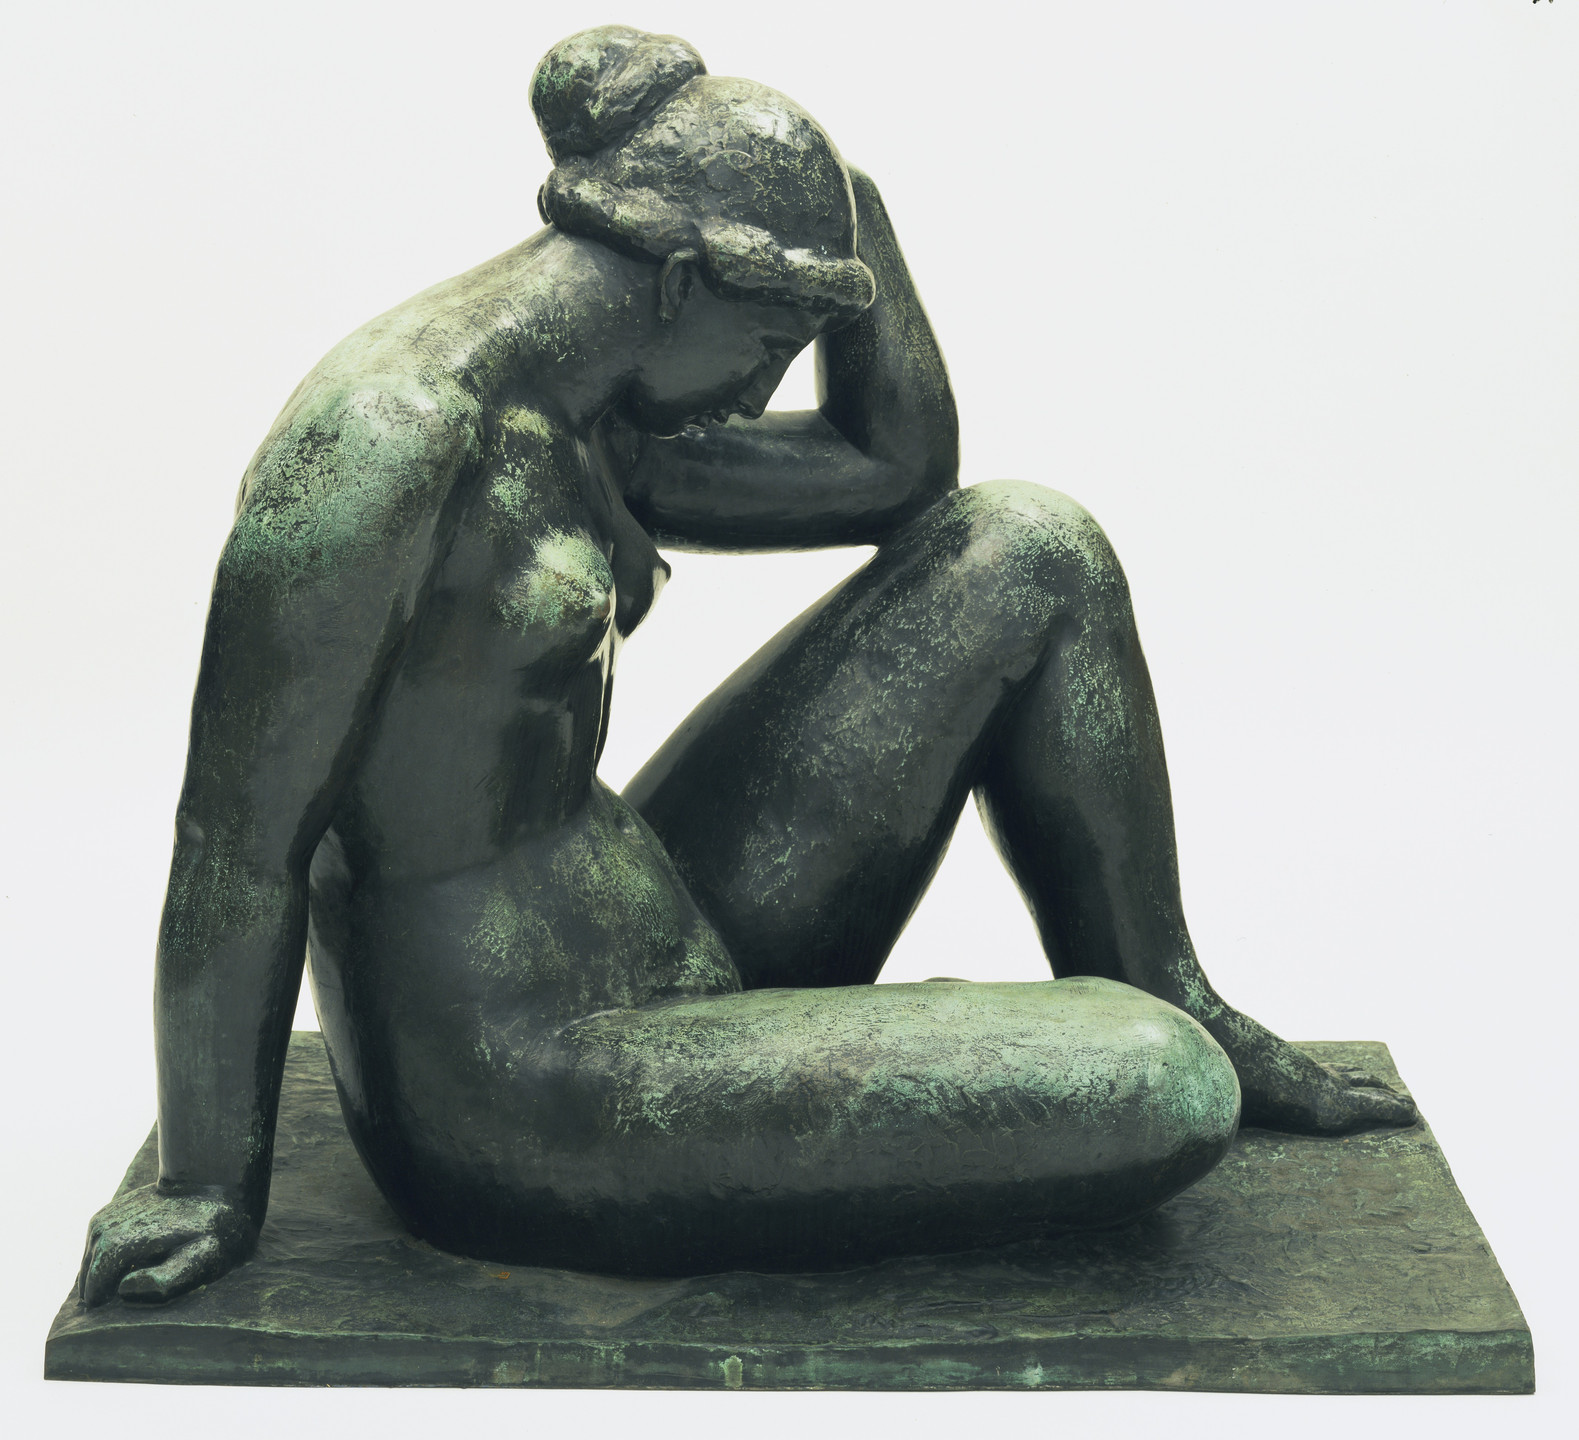 Aristide Maillol. The Mediterranean. 1902-05 (cast c. 1951-53)